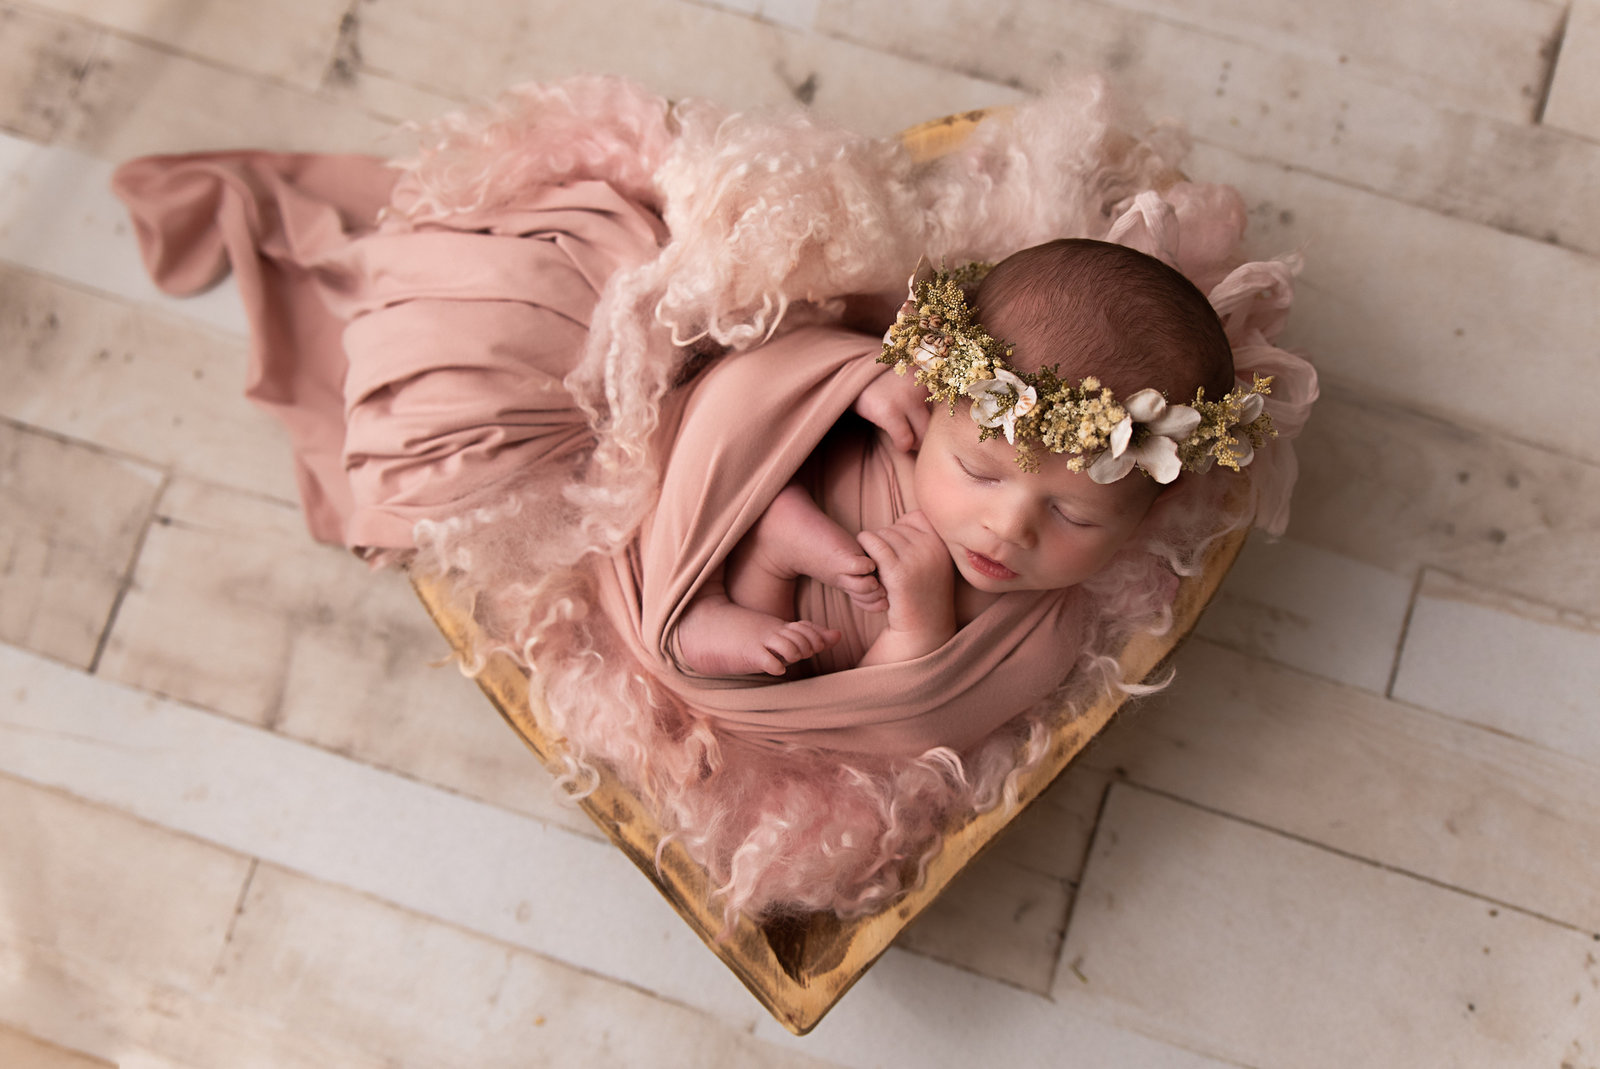 Newborn baby girl wrapped in pink fabric and asleep in a heart shaped bowl. She is lying in pink wool fluff and wearing a creamy colored floral crown